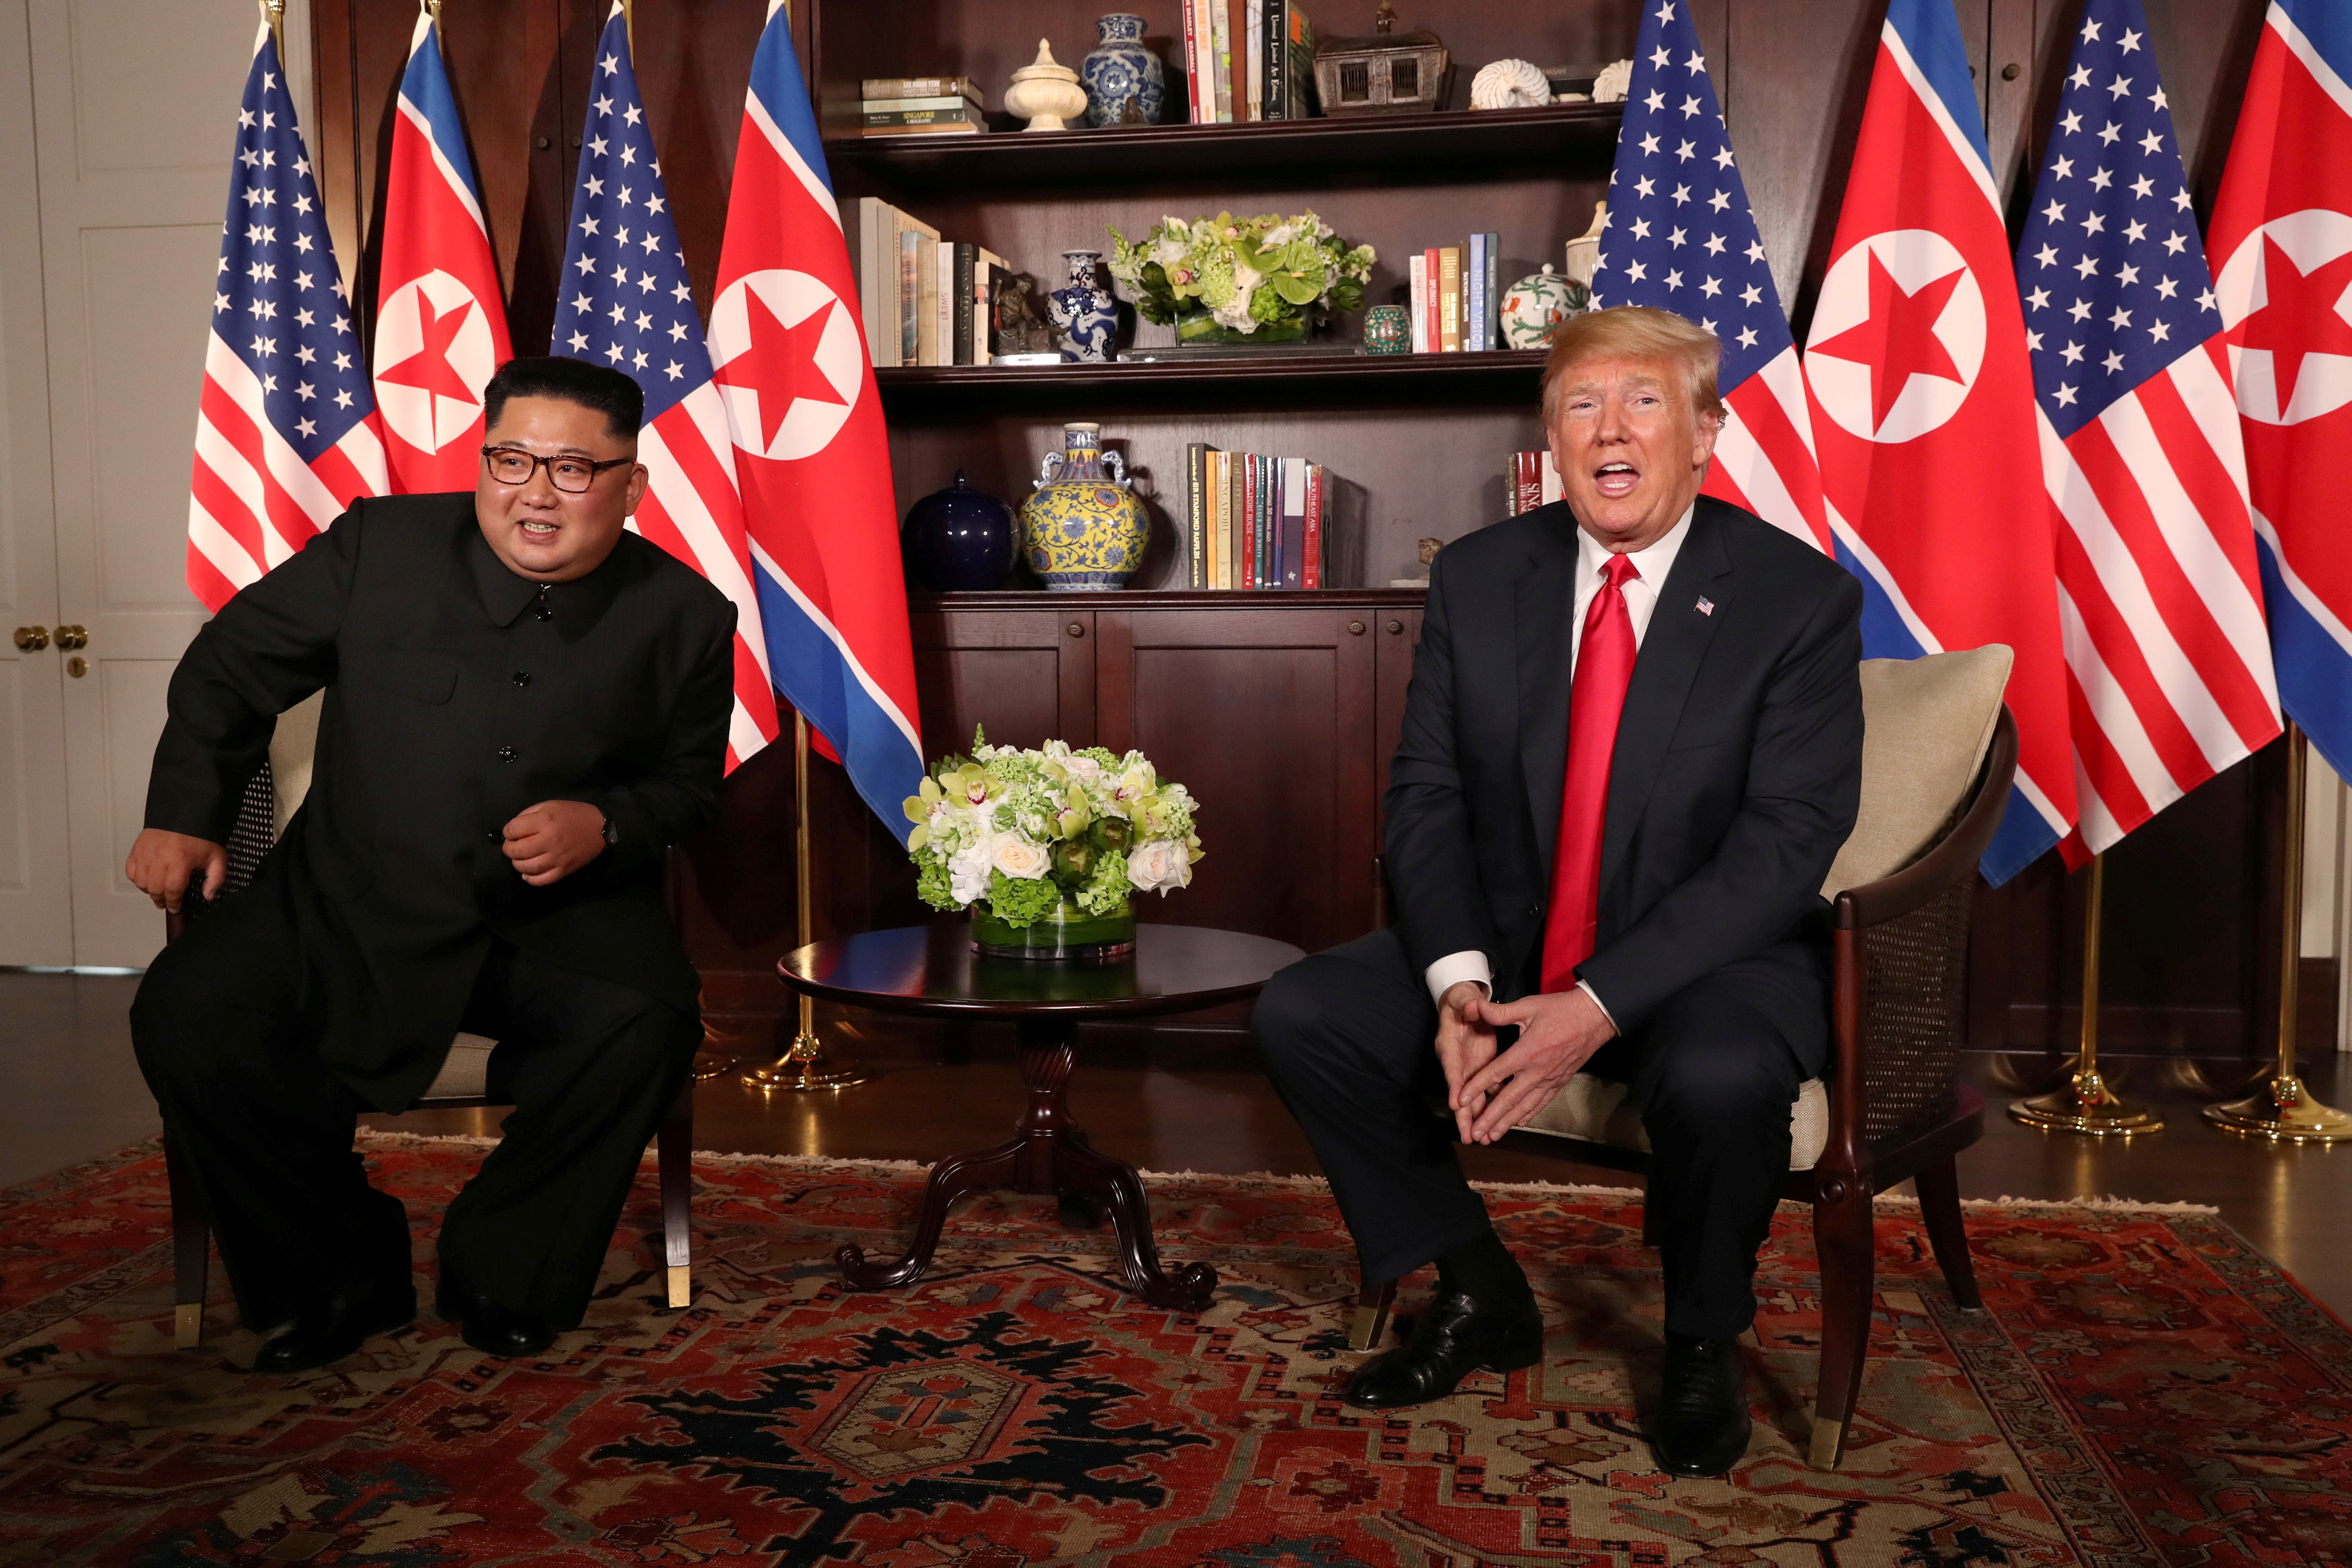 President Donald Trump sits next to North Korea's Kim Jong Un before their meeting in Singapore on June 12, 2018.